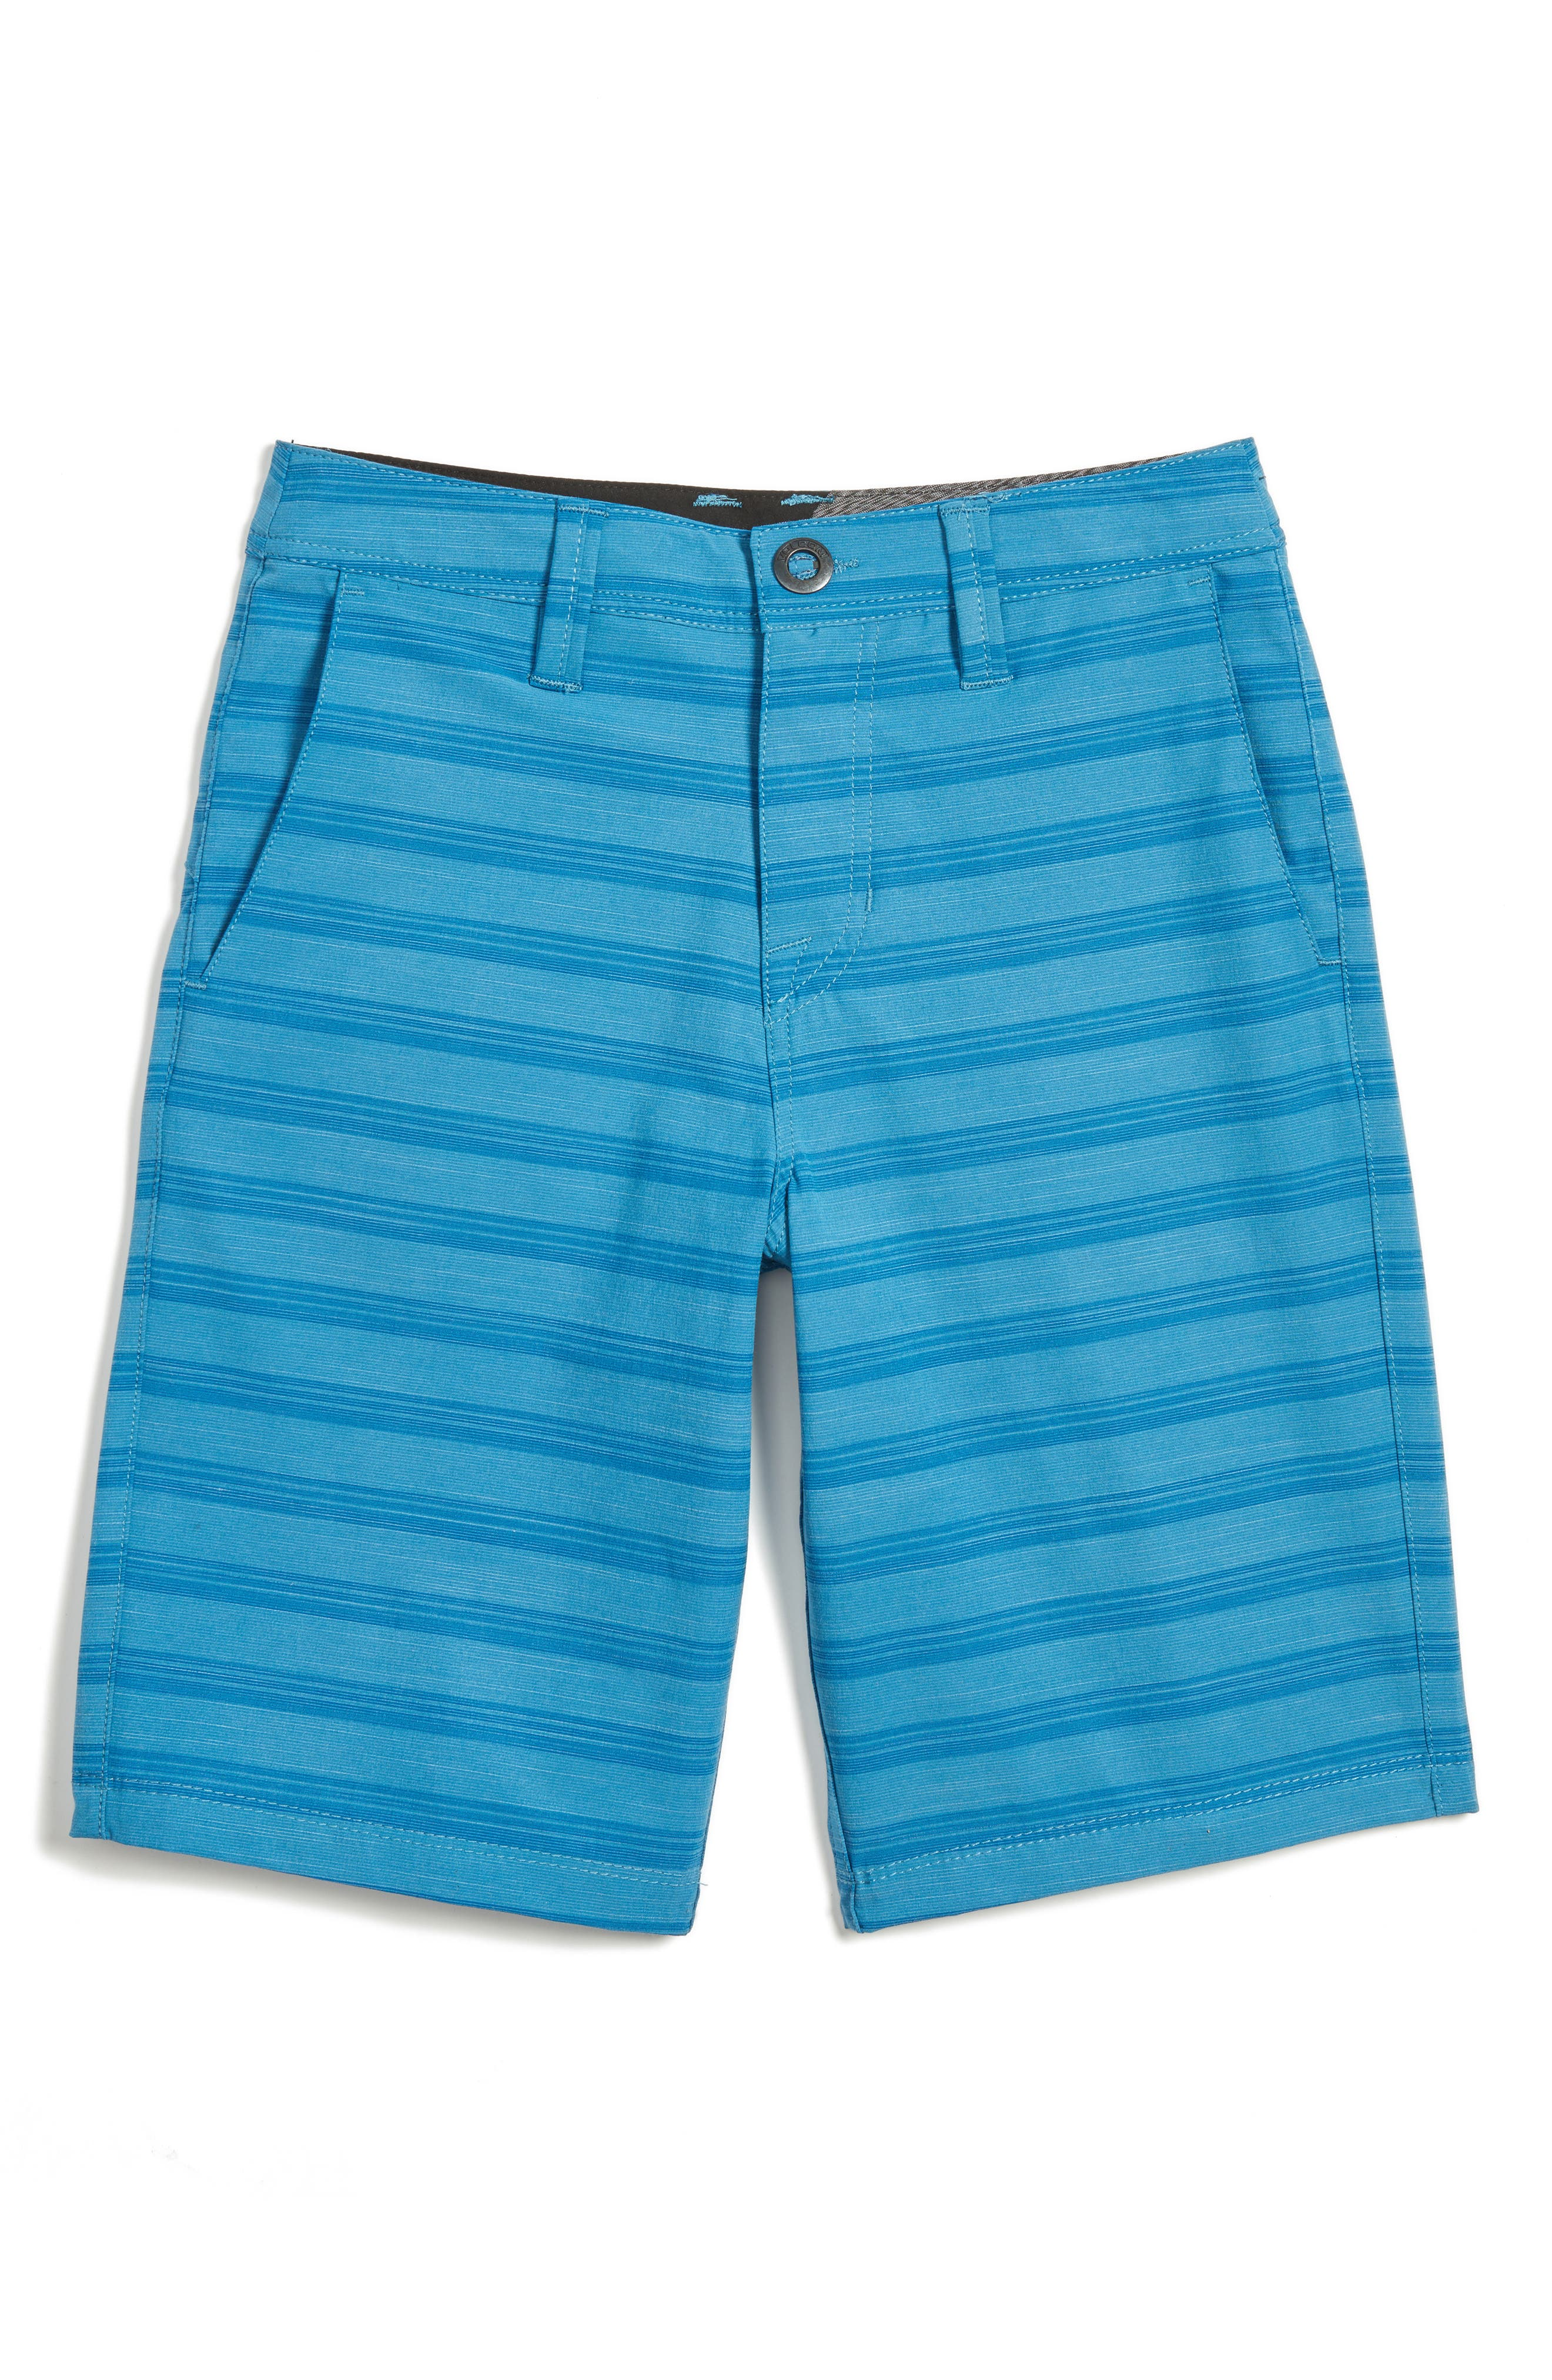 Main Image - Volcom Surf N' Turf Hybrid Shorts (Big Boys)